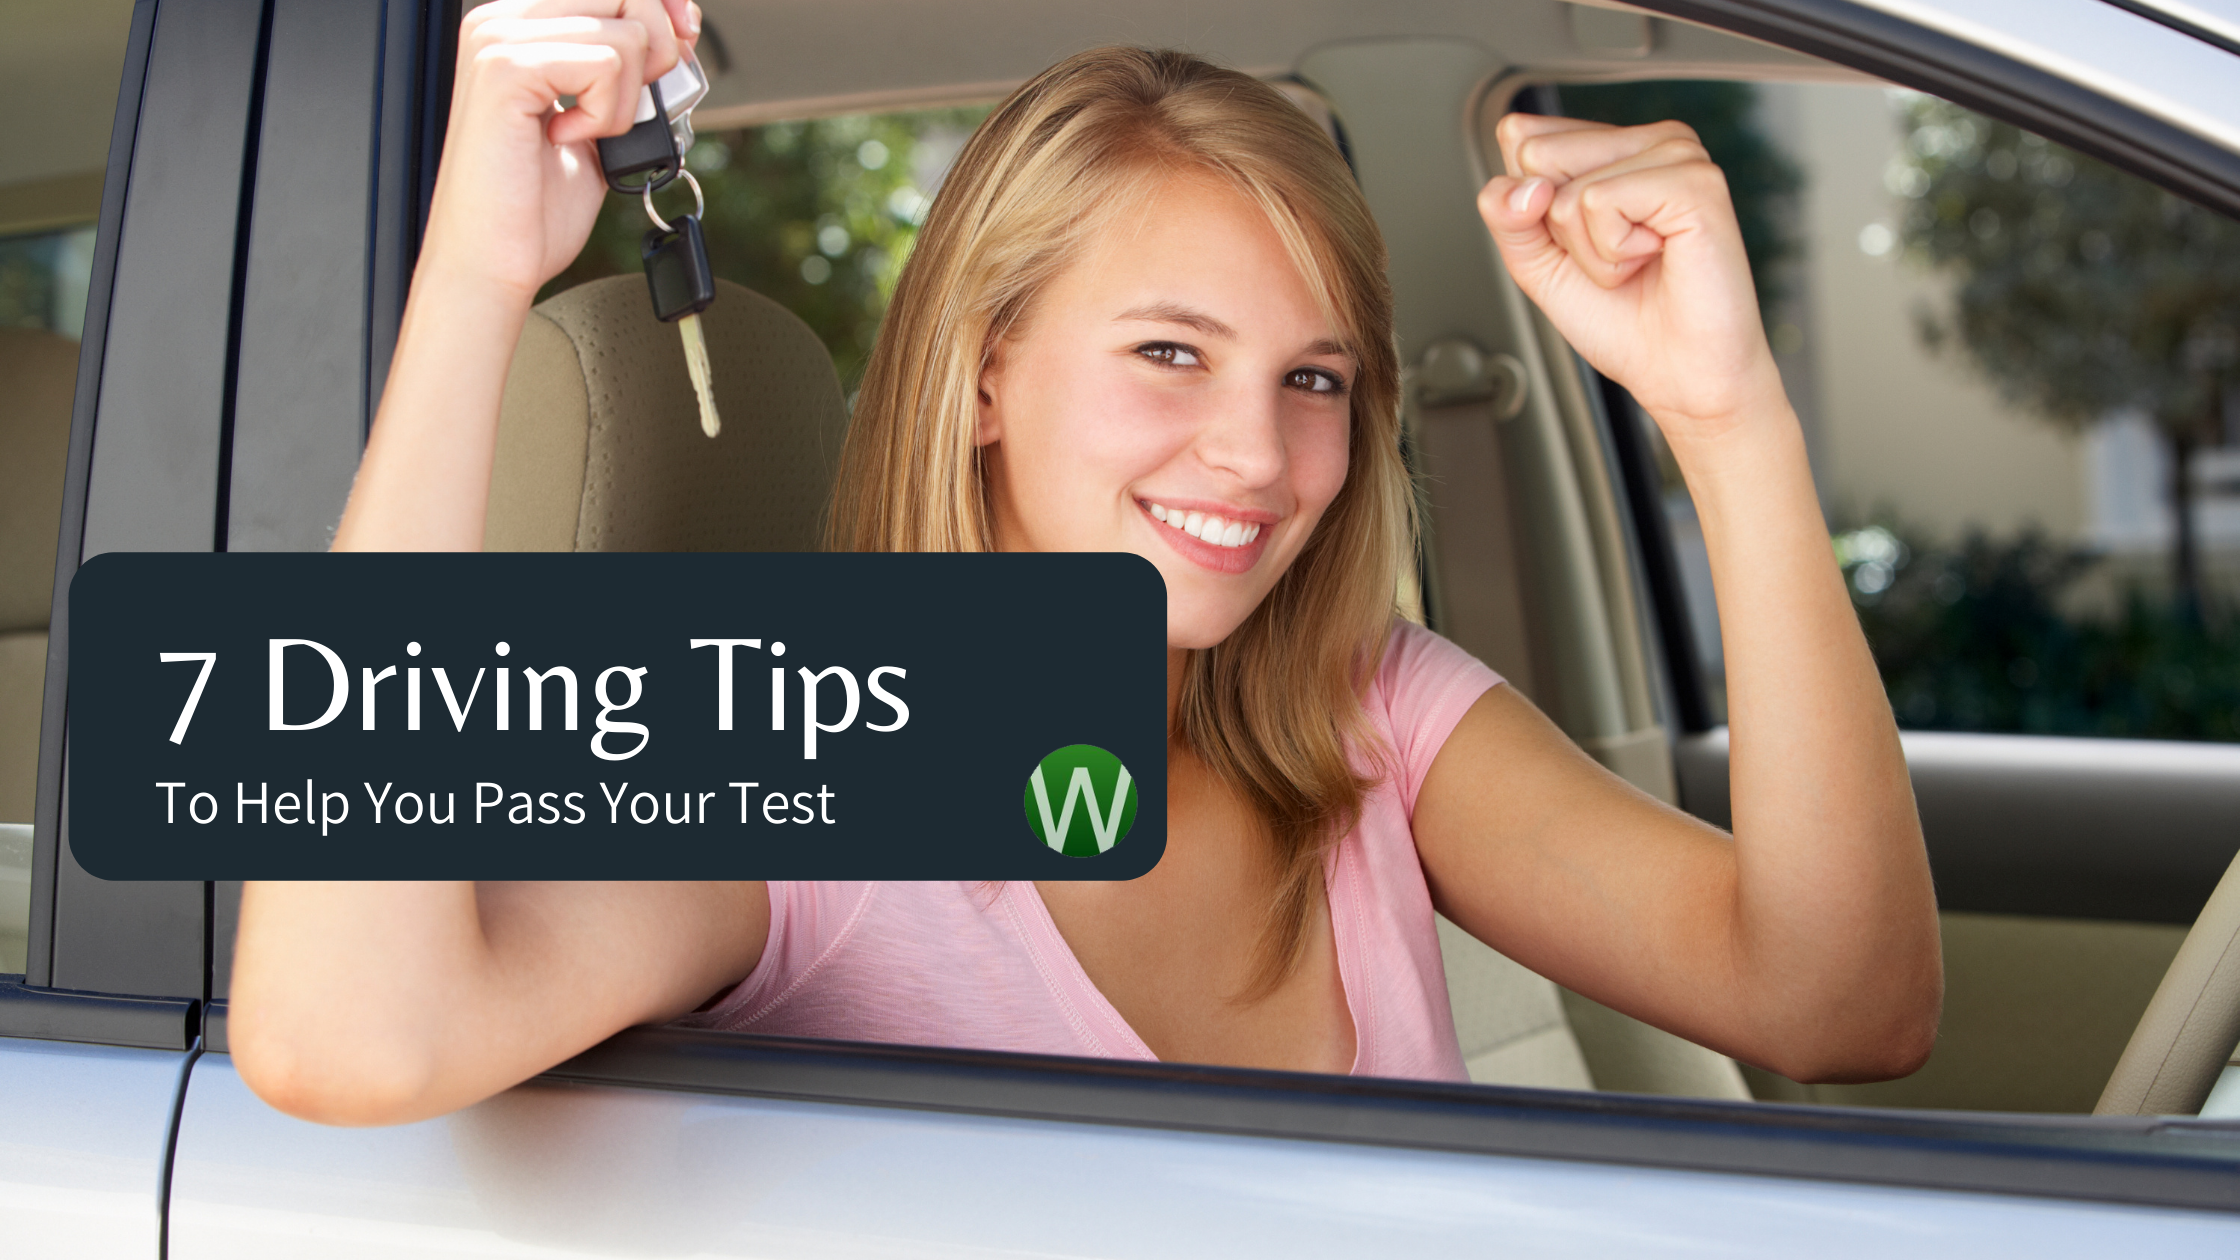 7 Driving Tips To Help You Pass Your Test